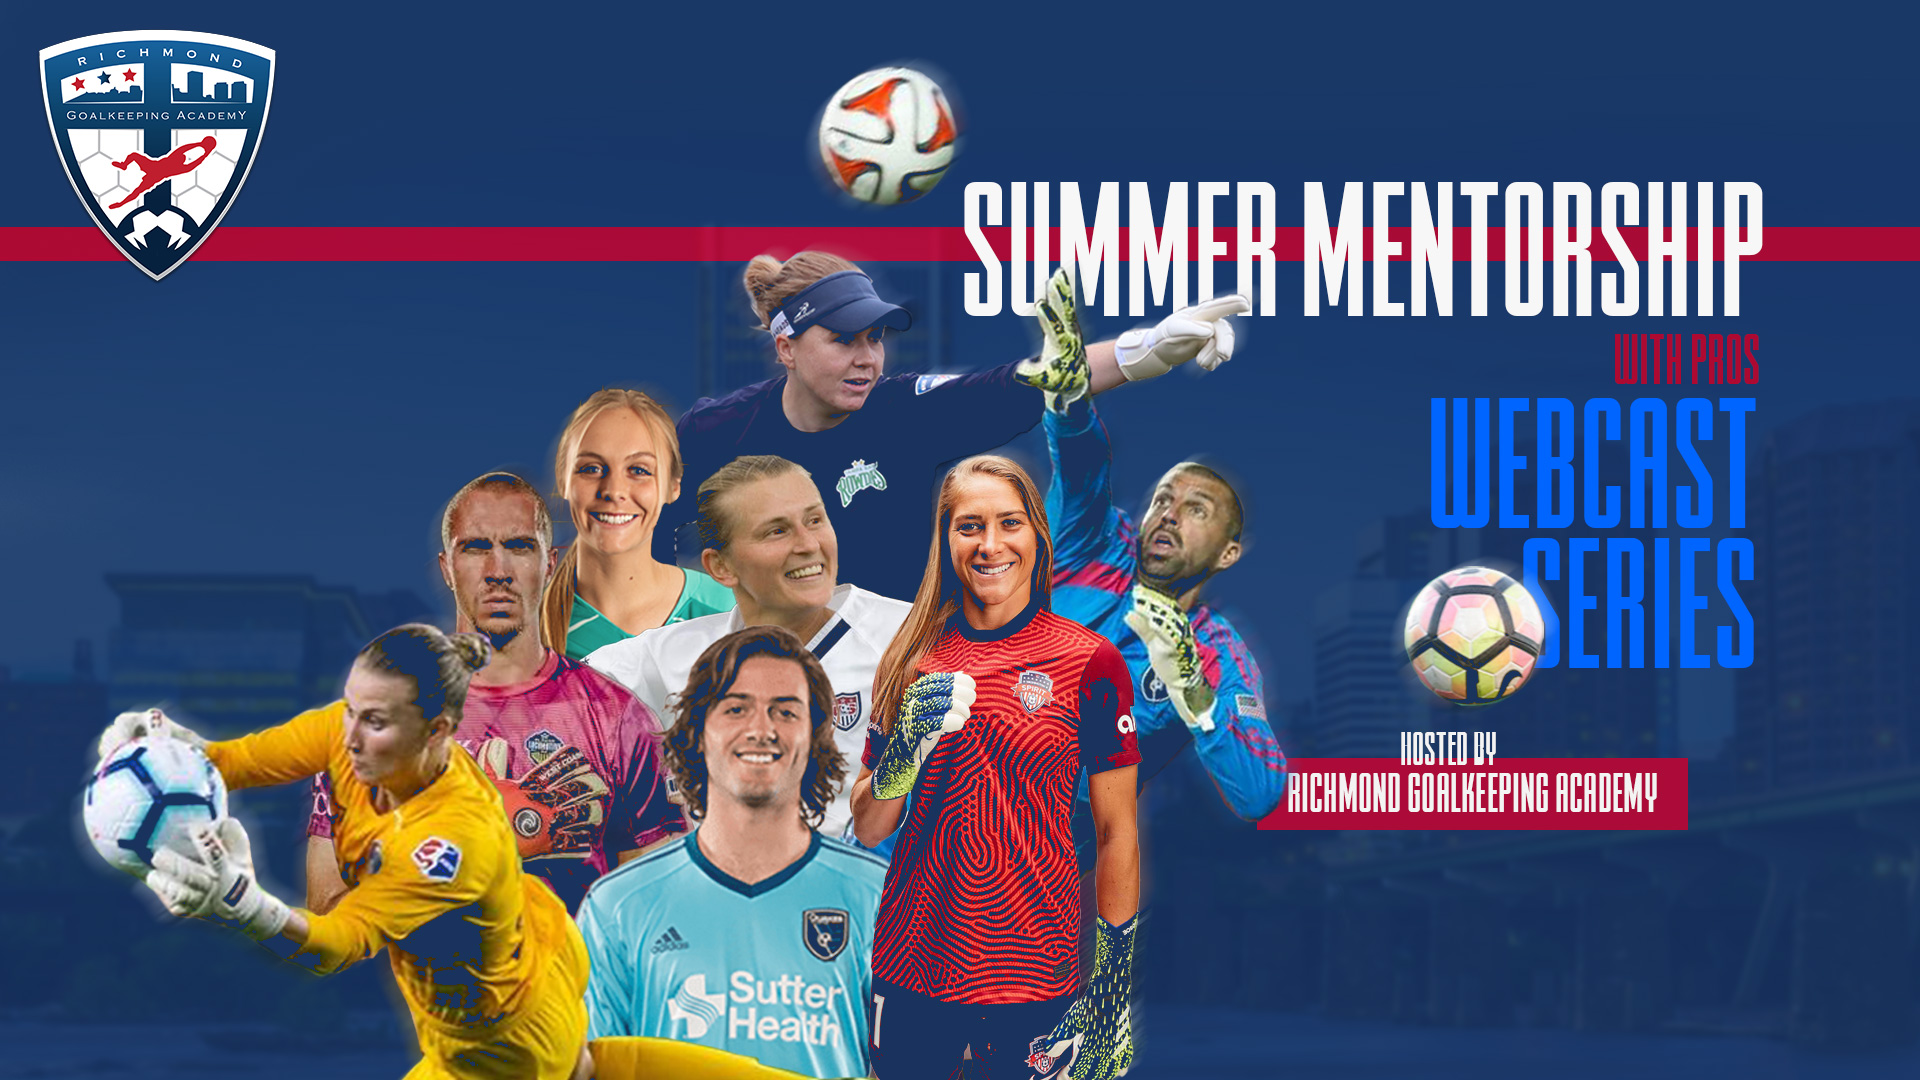 Summer Mentorship with Pros Webcast series photo.